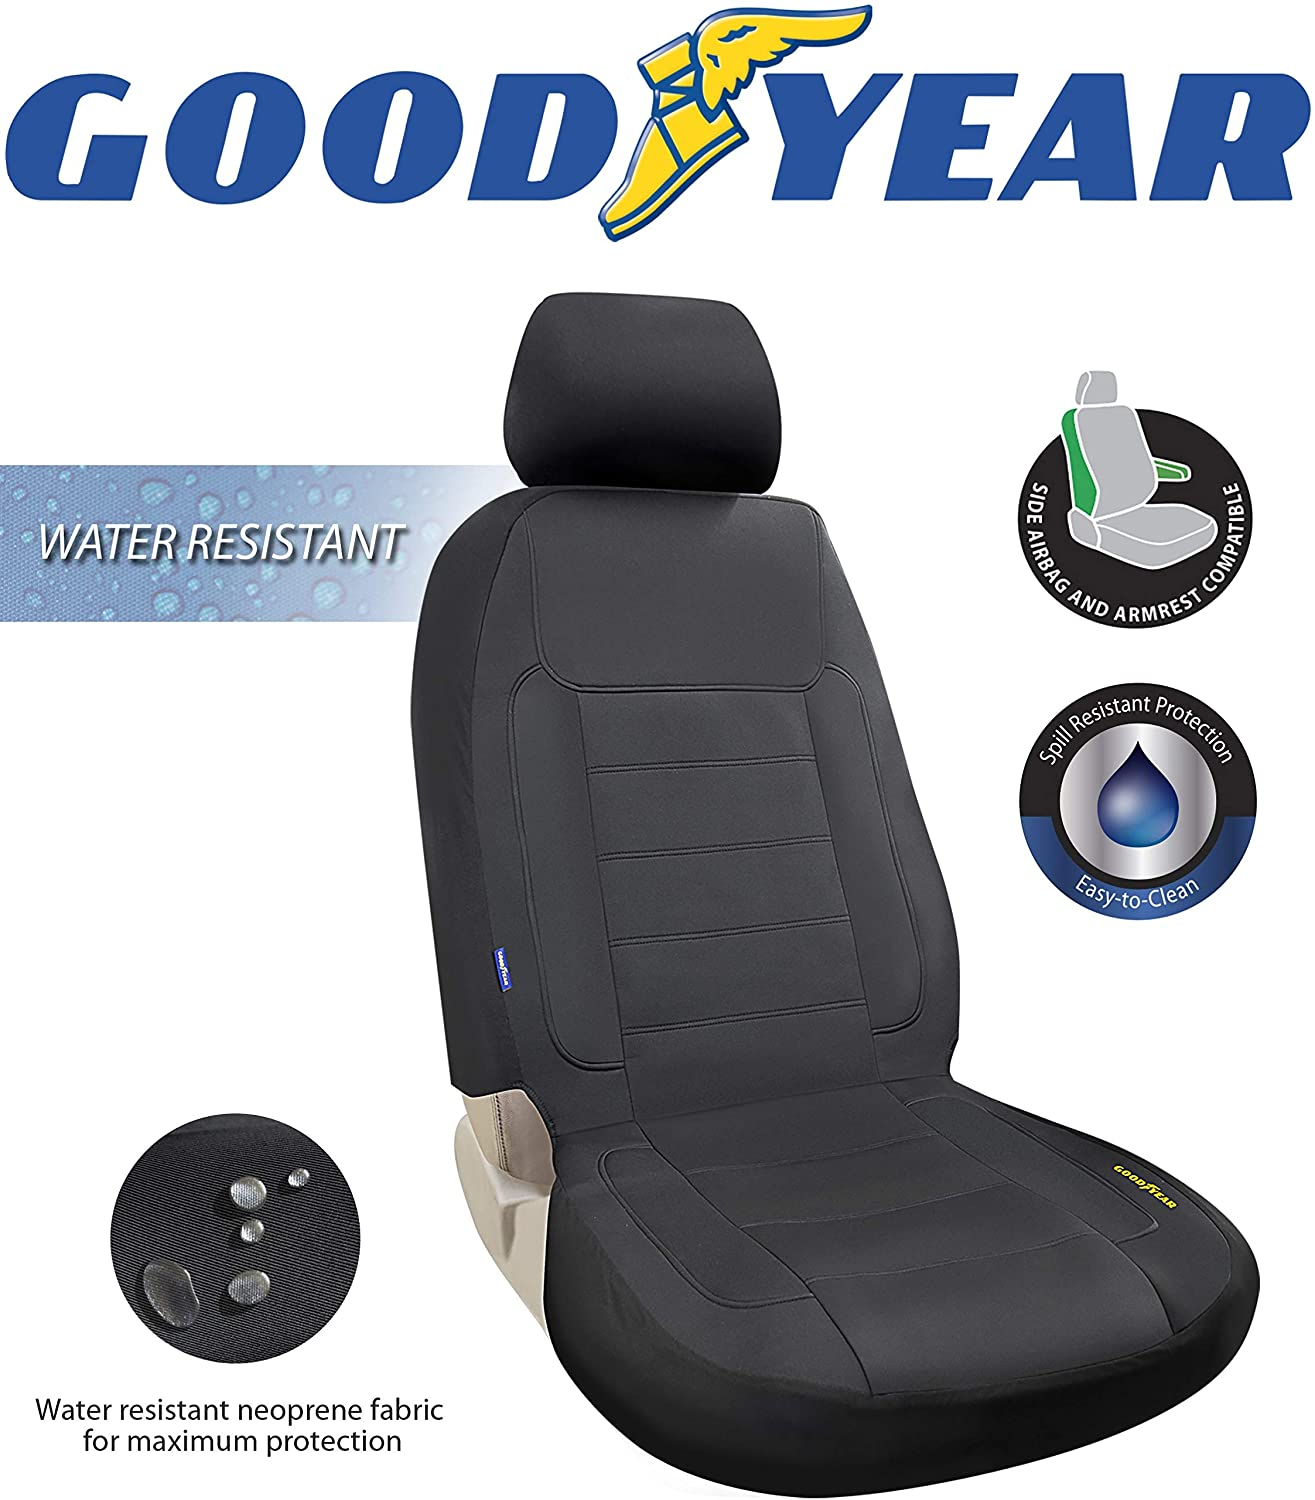 Goodyear GY1247 \ Water Resistant Car Seat Cover \ 100% Pure Neoprene Fabric for Maximum Protection \ Fits Most Vehicles \ Headrest Cover 10�H x 11�W \ Seat 46�H x 18�W \ Side Airbag Compatible